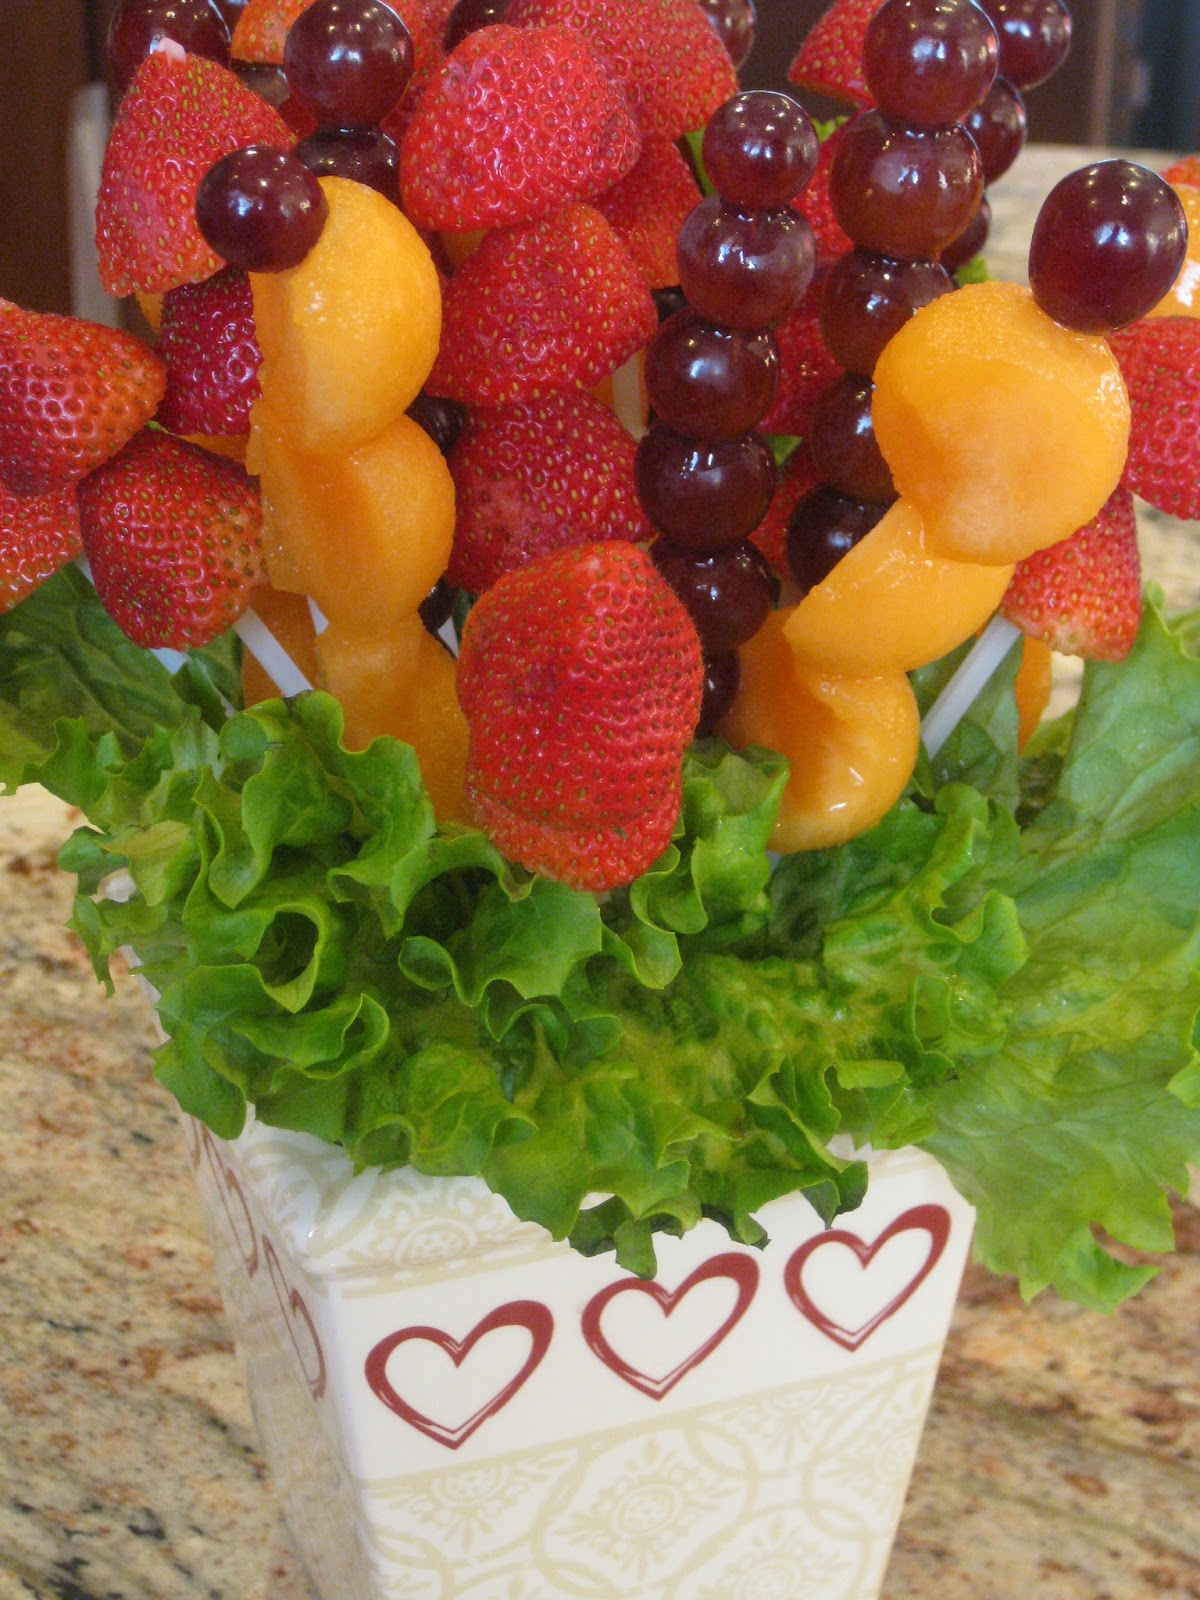 Fruit Bouquet A Baker 39 S House: fruit bouquet